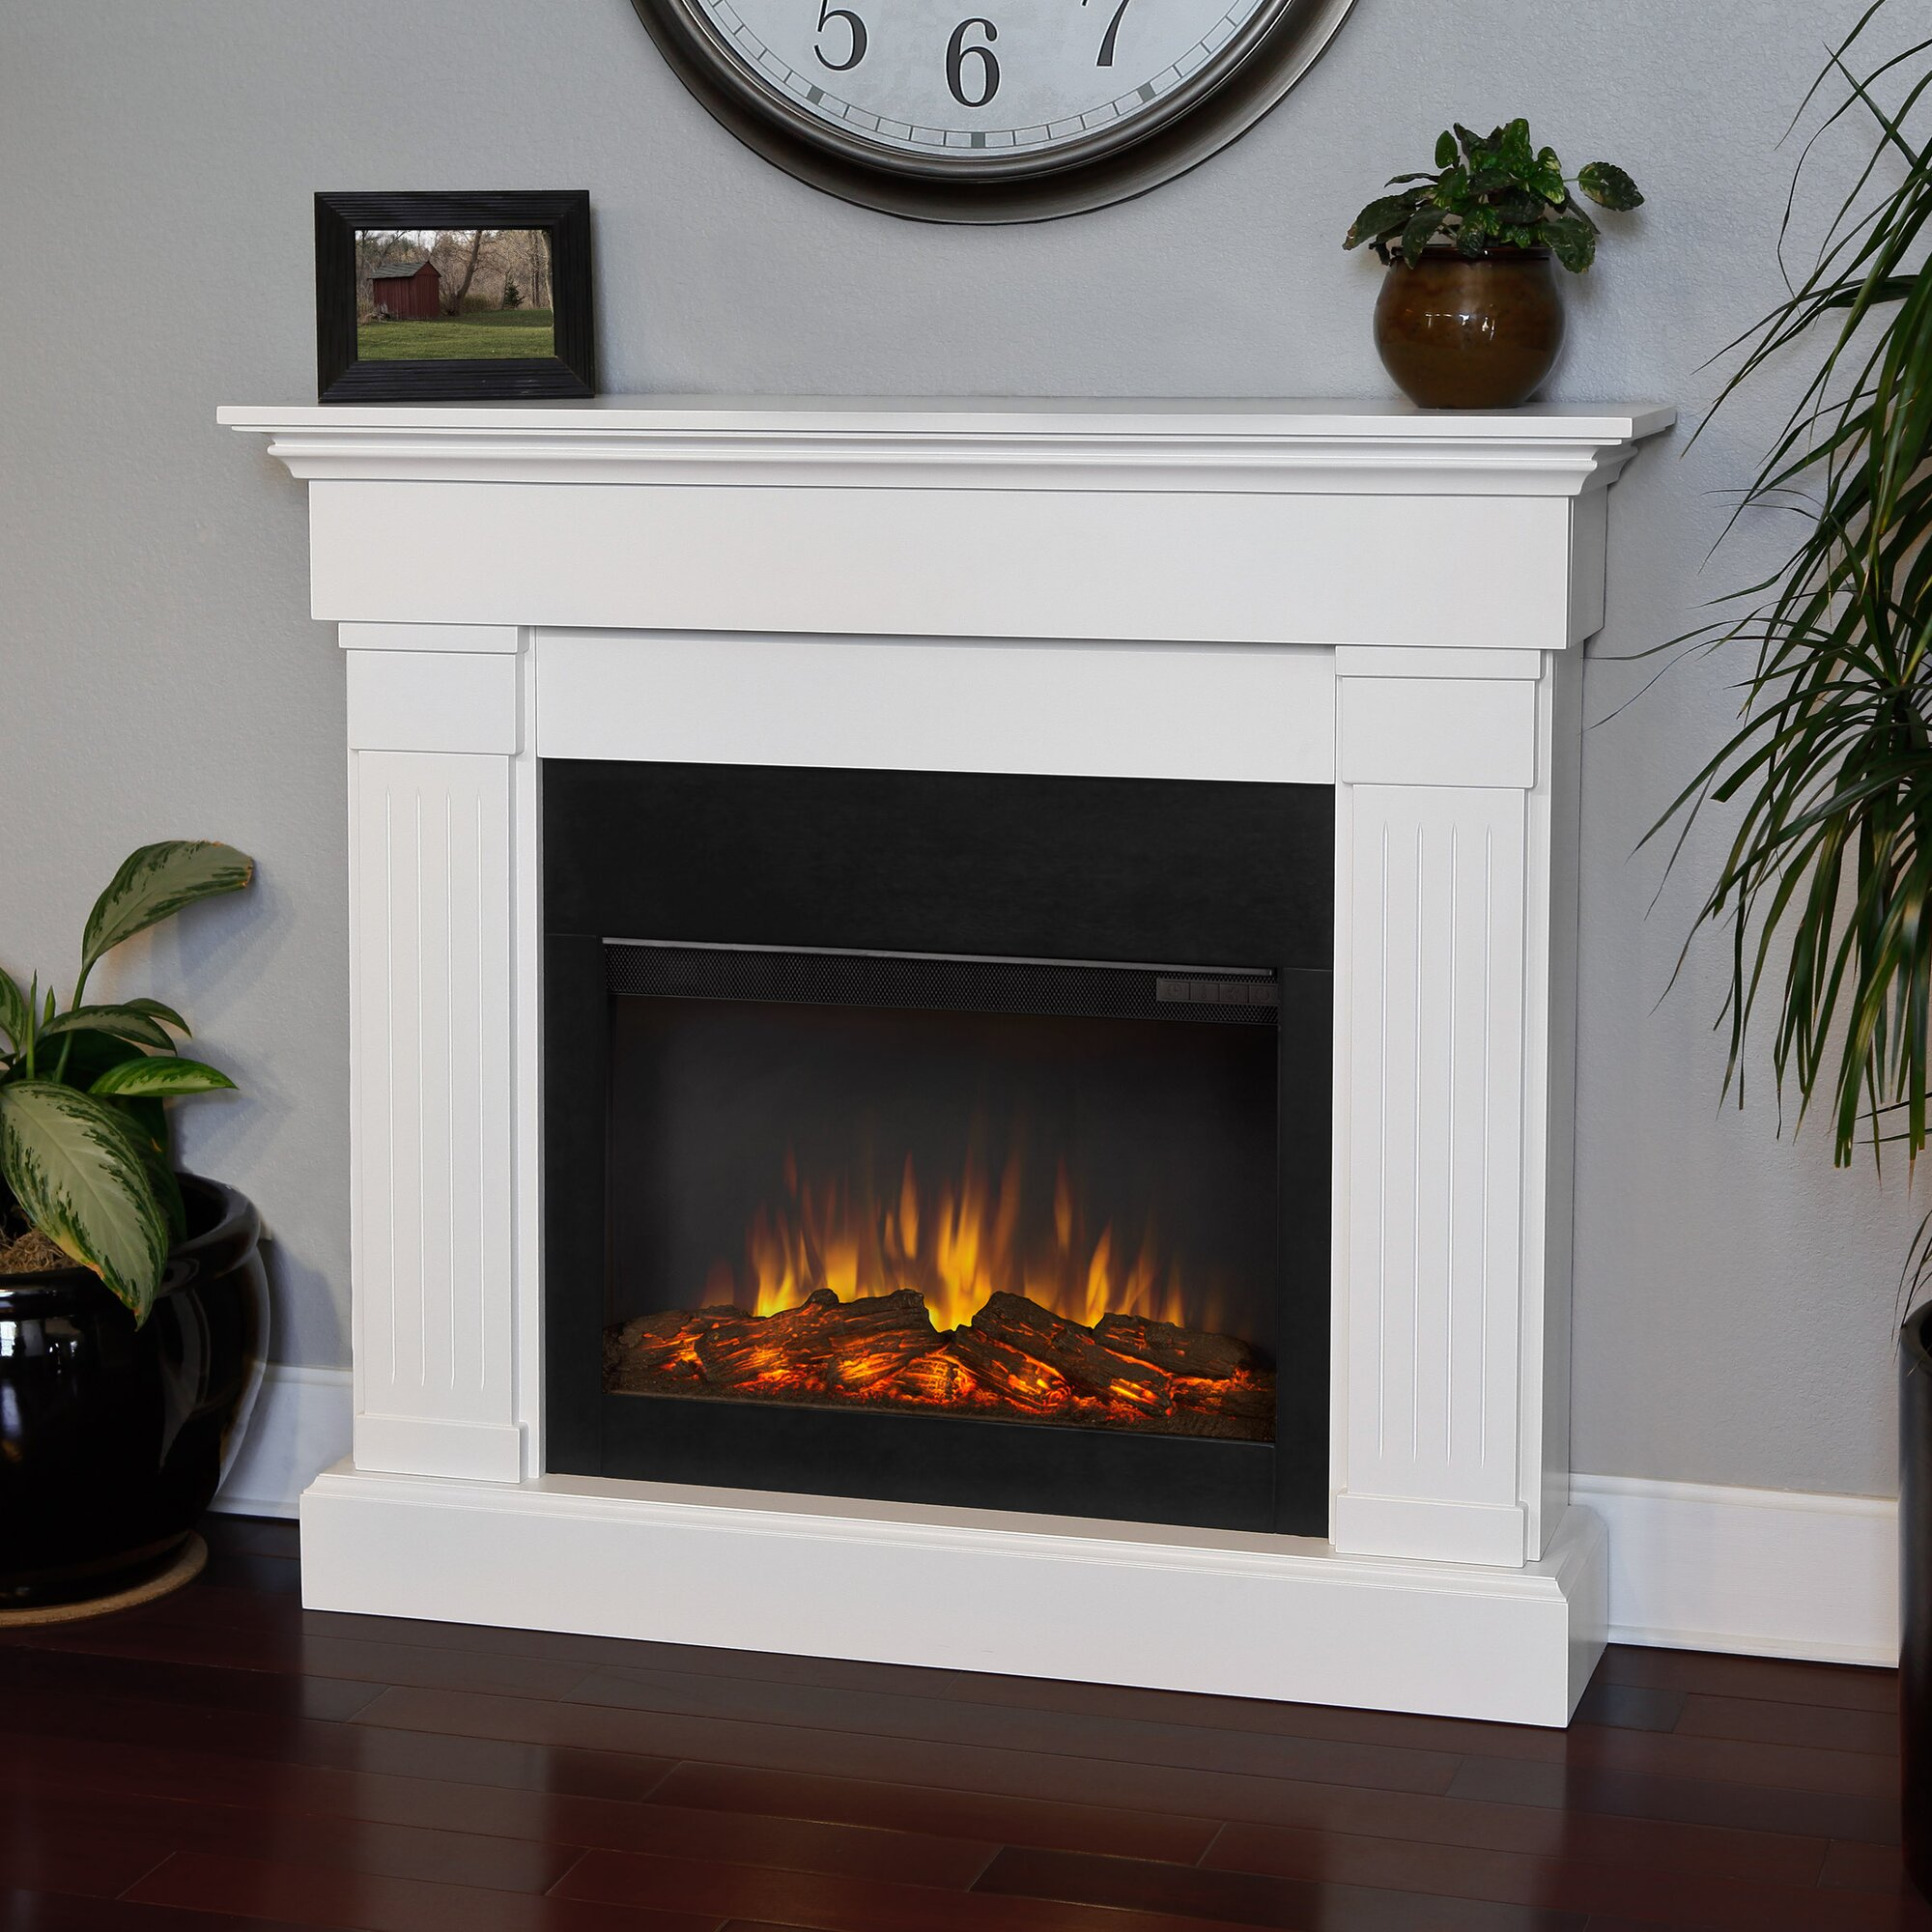 Bedroom electric fireplace - Slim Crawford Wall Mount Electric Fireplace